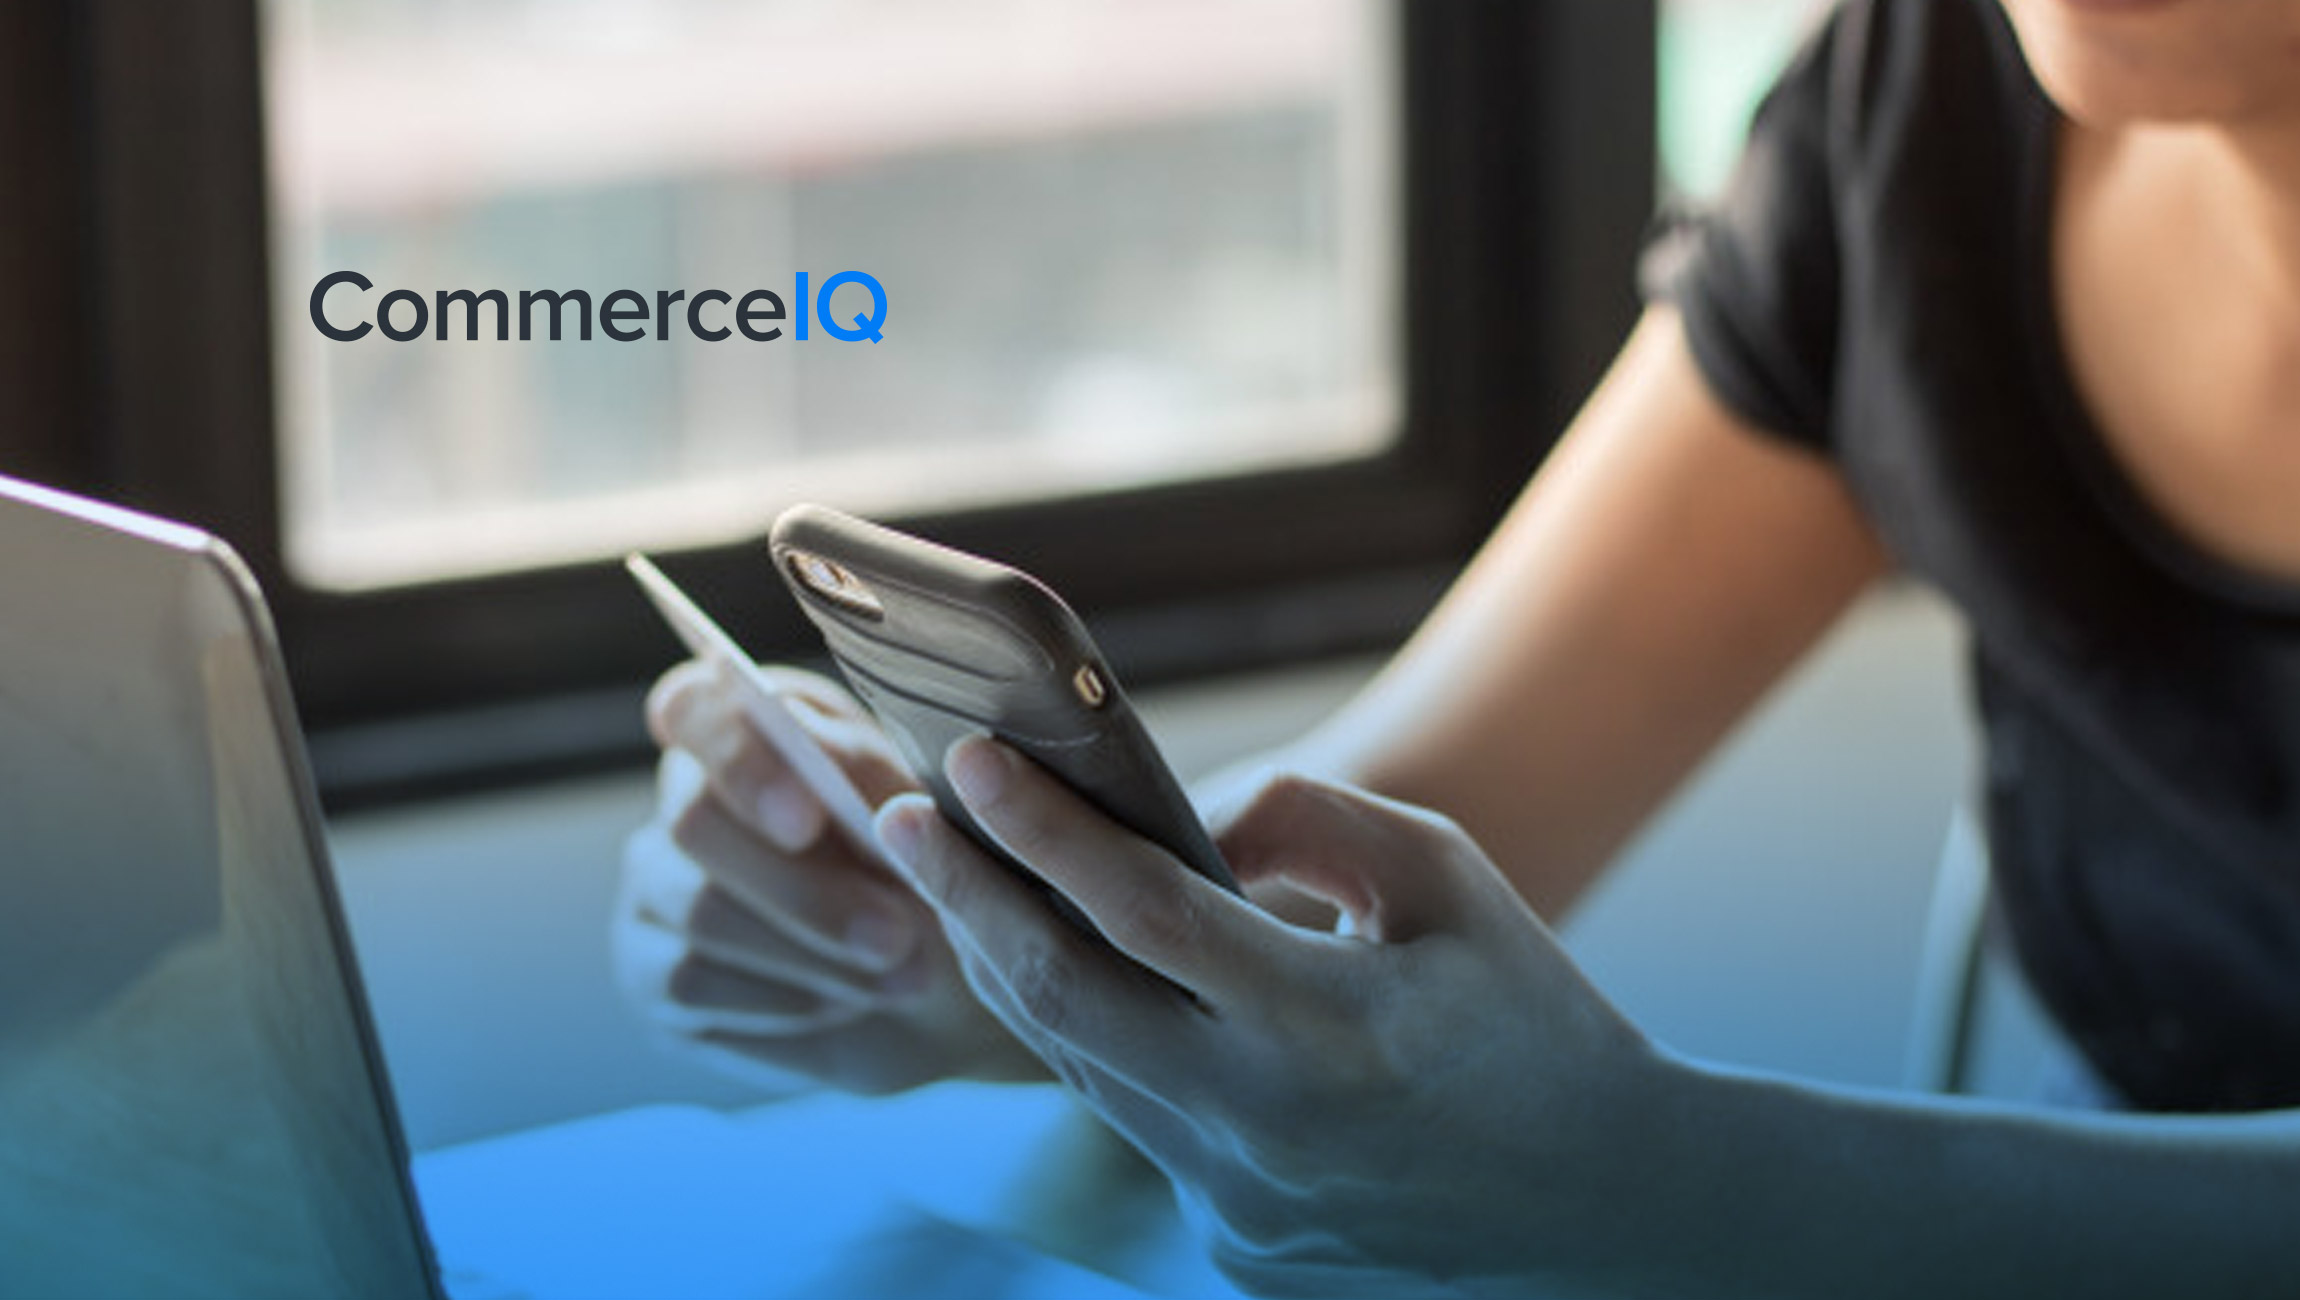 CommerceIQ Enables Movado's E-Commerce Team With Amazon Command Center To Take Actions Efficiently Across Sales, Marketing, and Operations